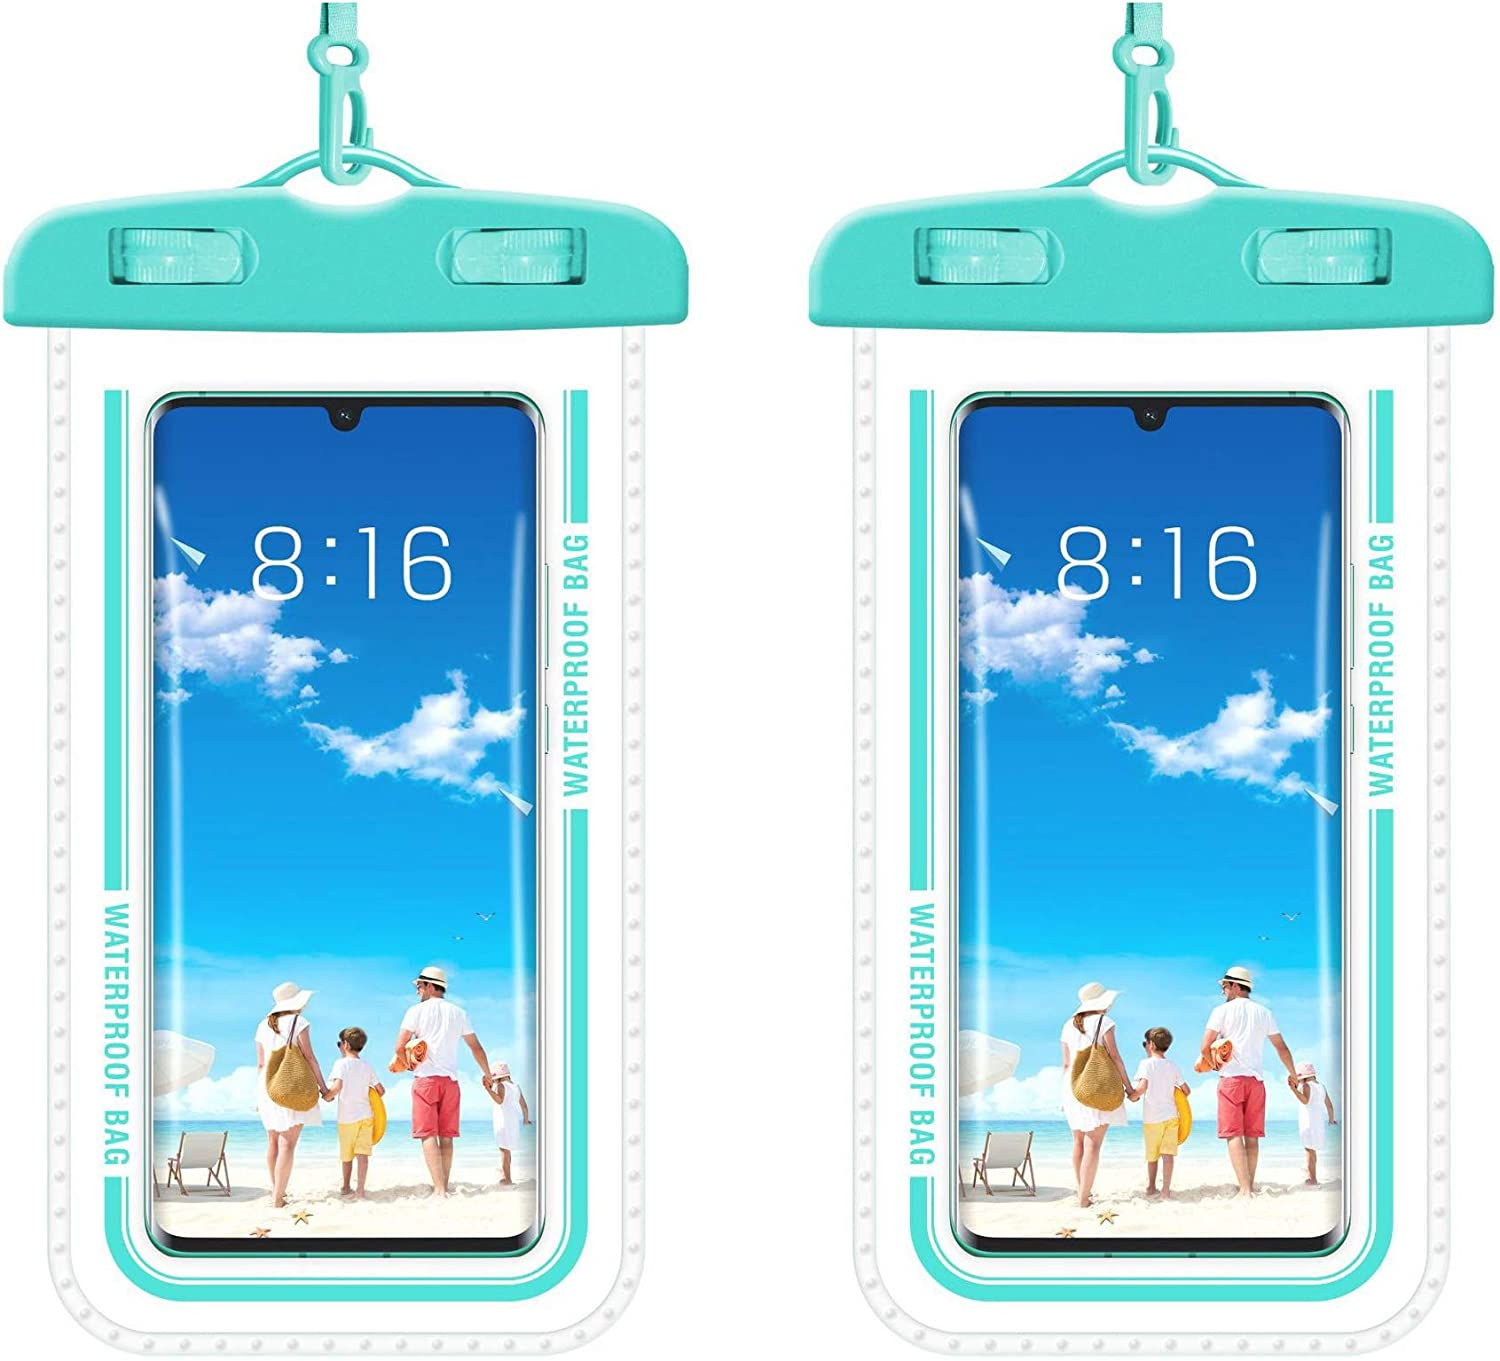 BROQLI Waterproof Case IPX8 Cell Phone Dry Bag Compatible for iPhone 12 Pro Max 11 Pro Galaxy S10 S9 Google Pixel up to 7.2